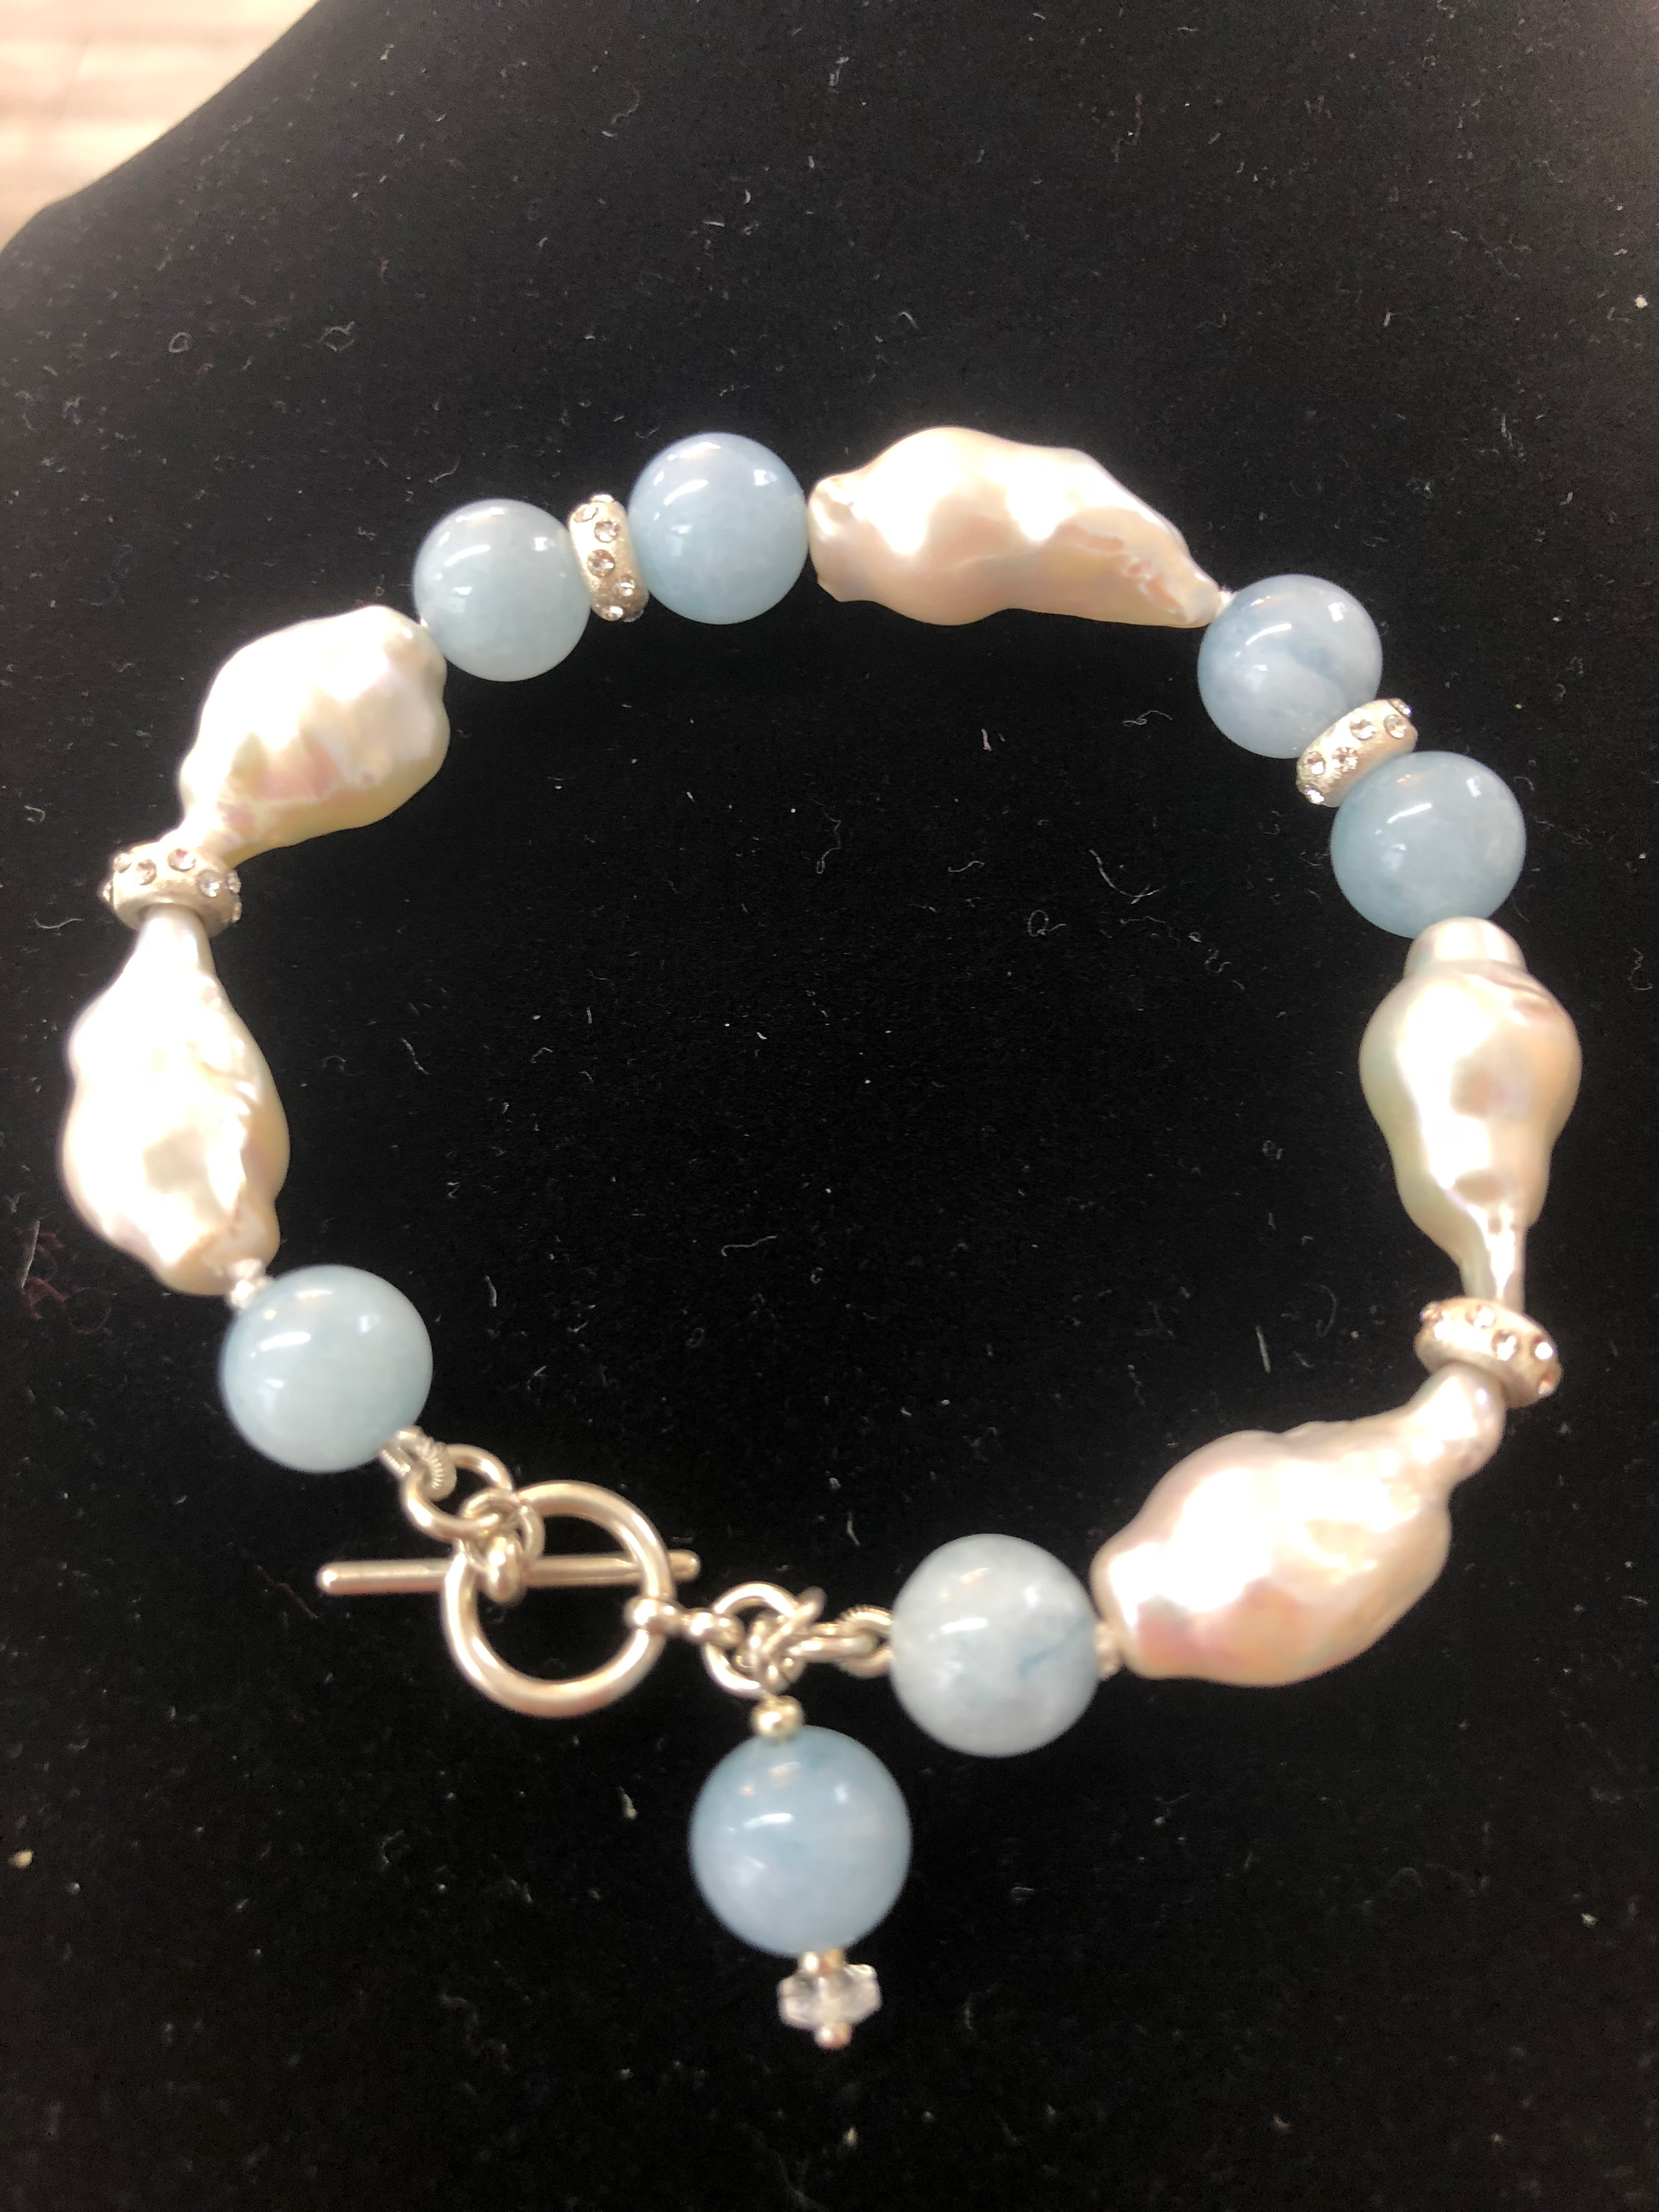 Sterling Silver Bracelet w/Freshwater Baroque Pearls & 7mm Aquamarine Balls